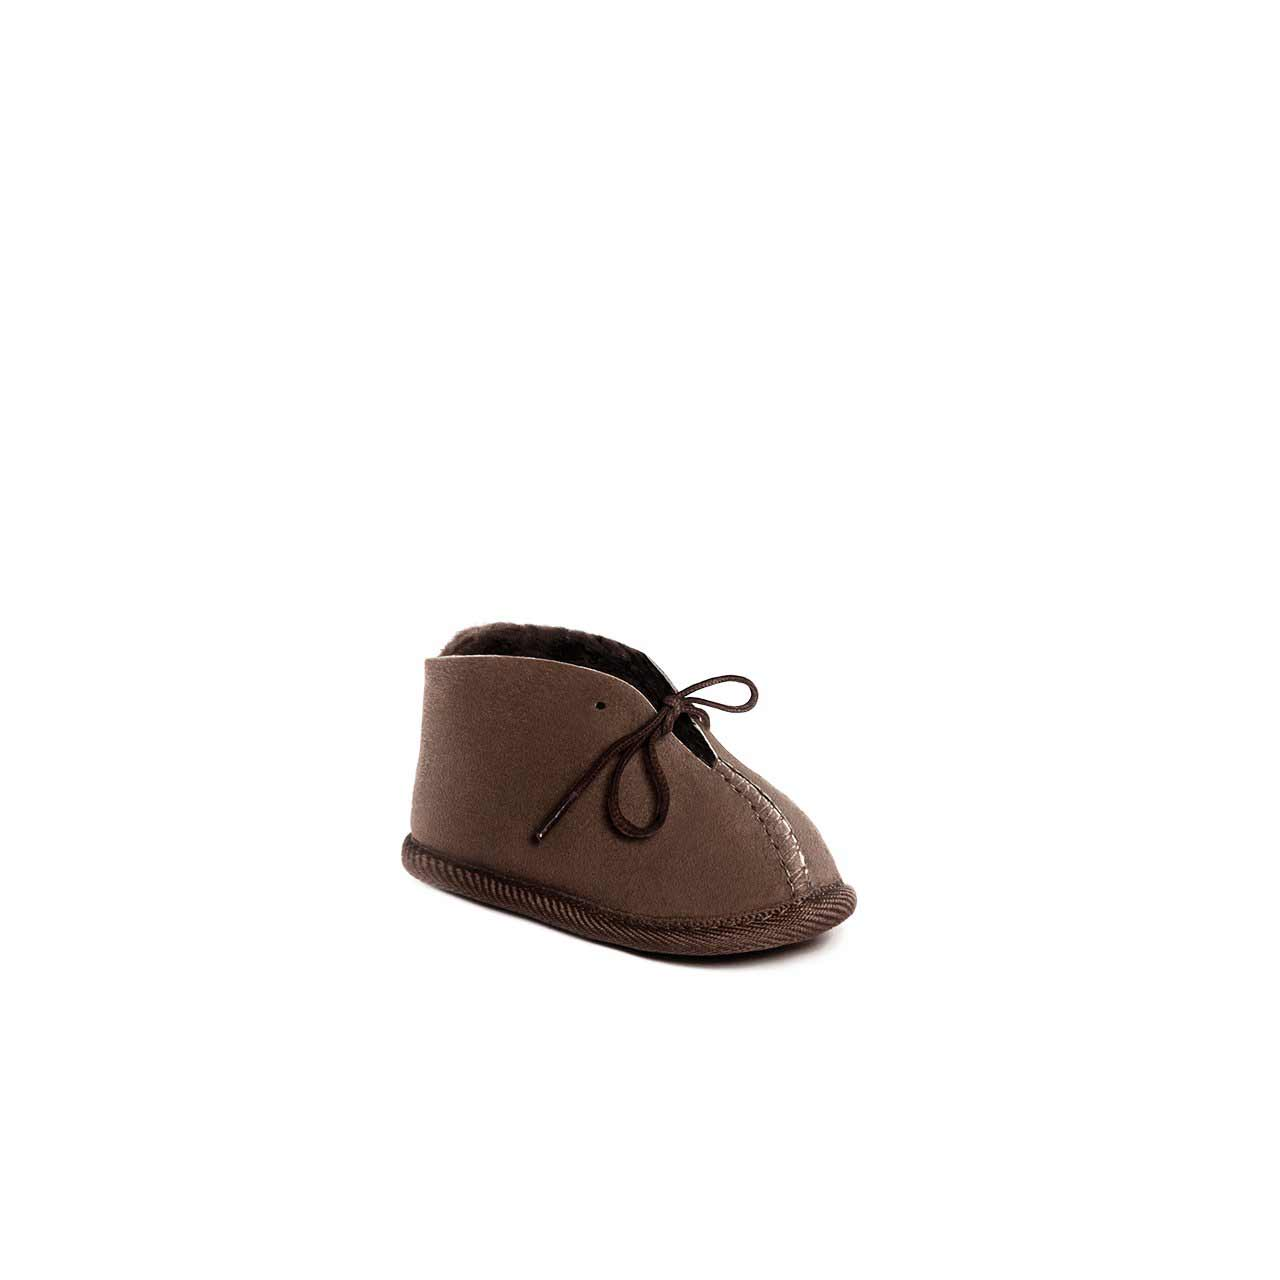 Sheepskin Baby Booties | 100% Australian Made | Ugg Australia